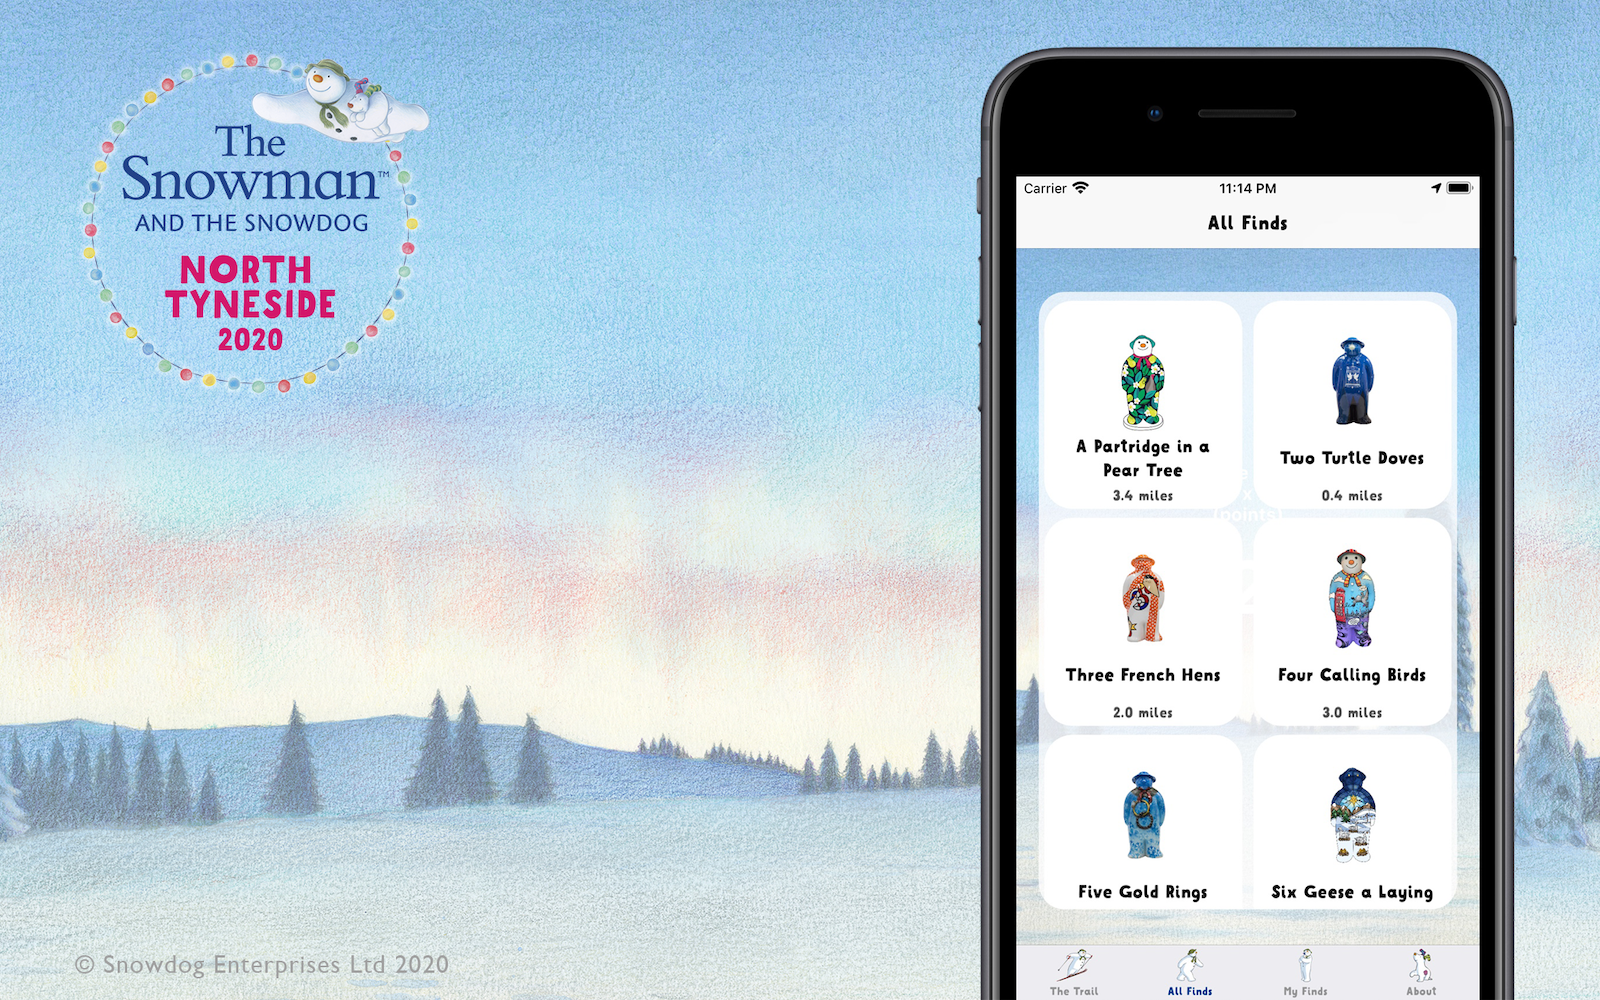 The Snowman™ & The Snowdog Trail App's picture